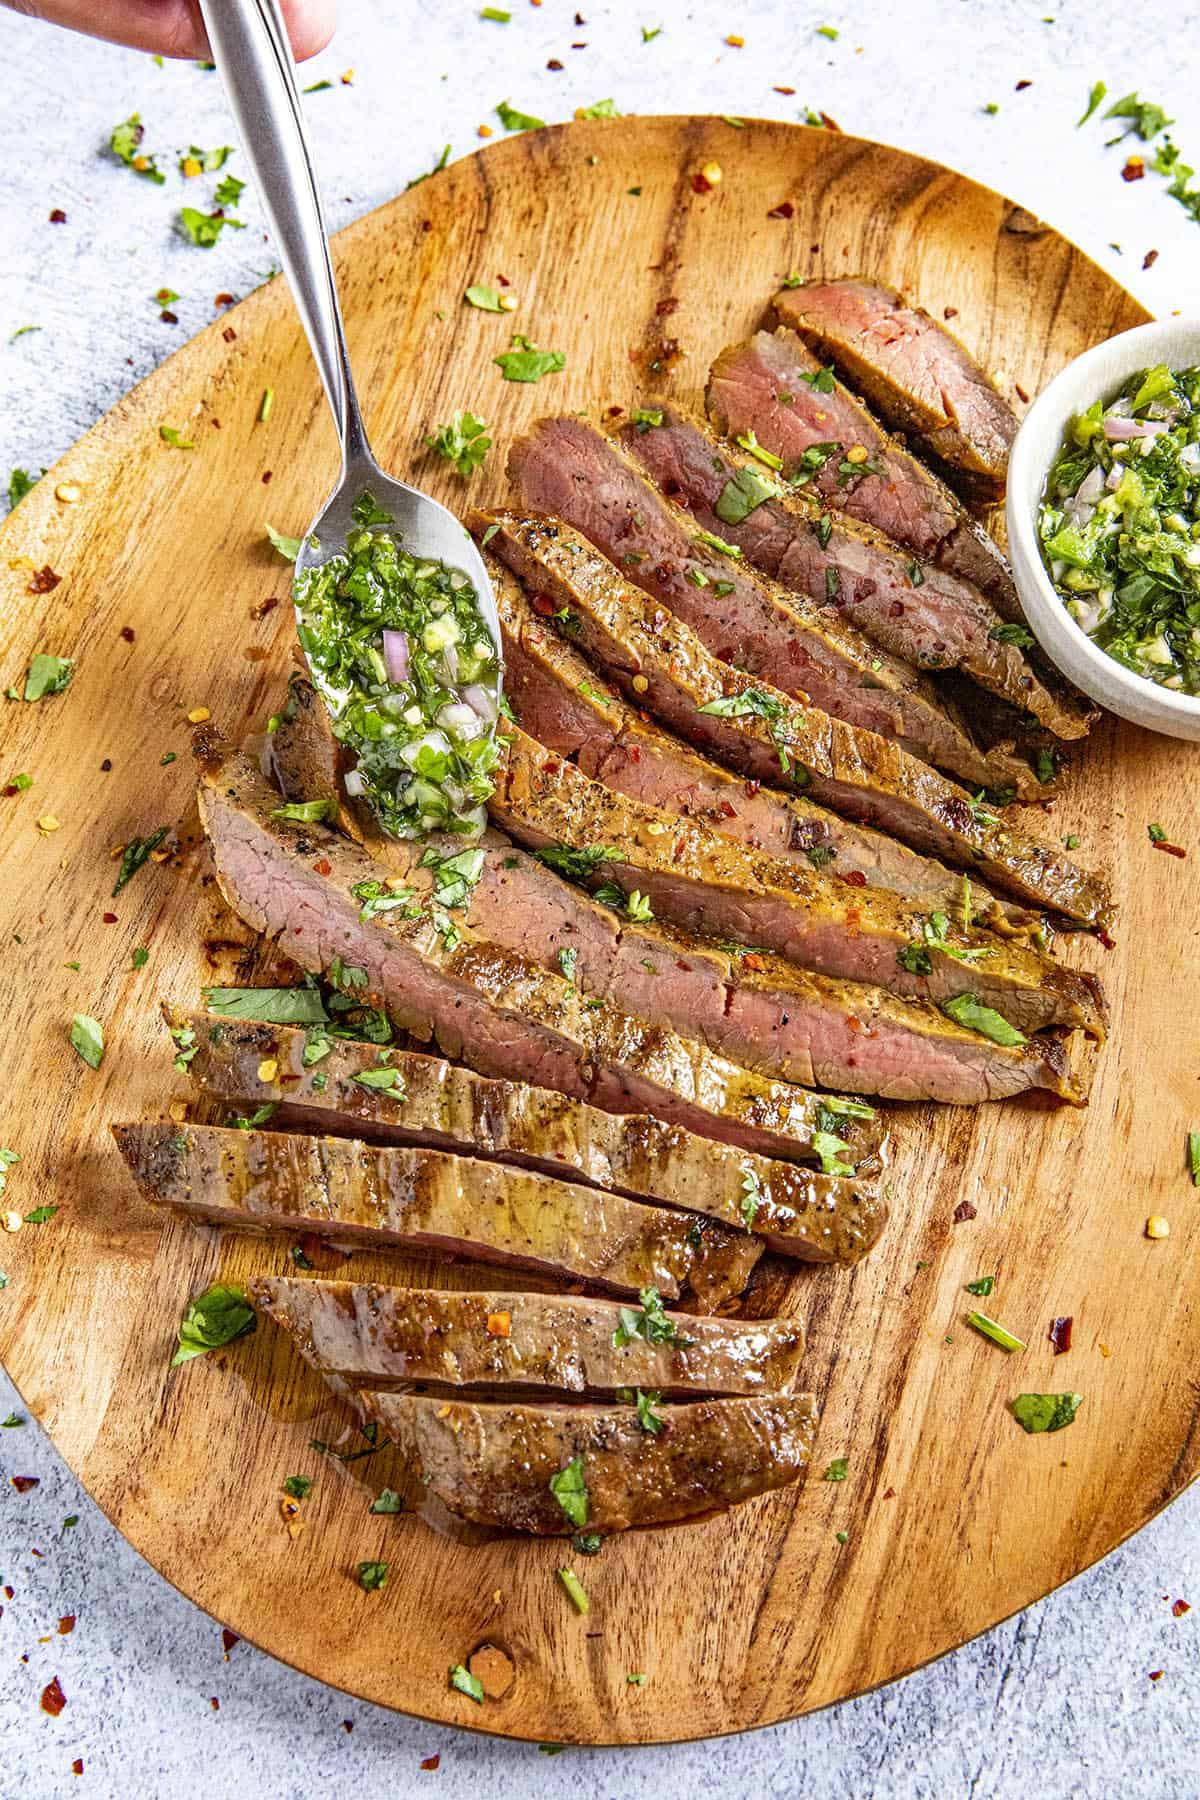 Mike spooning Chimichurri onto a sliced flank steak